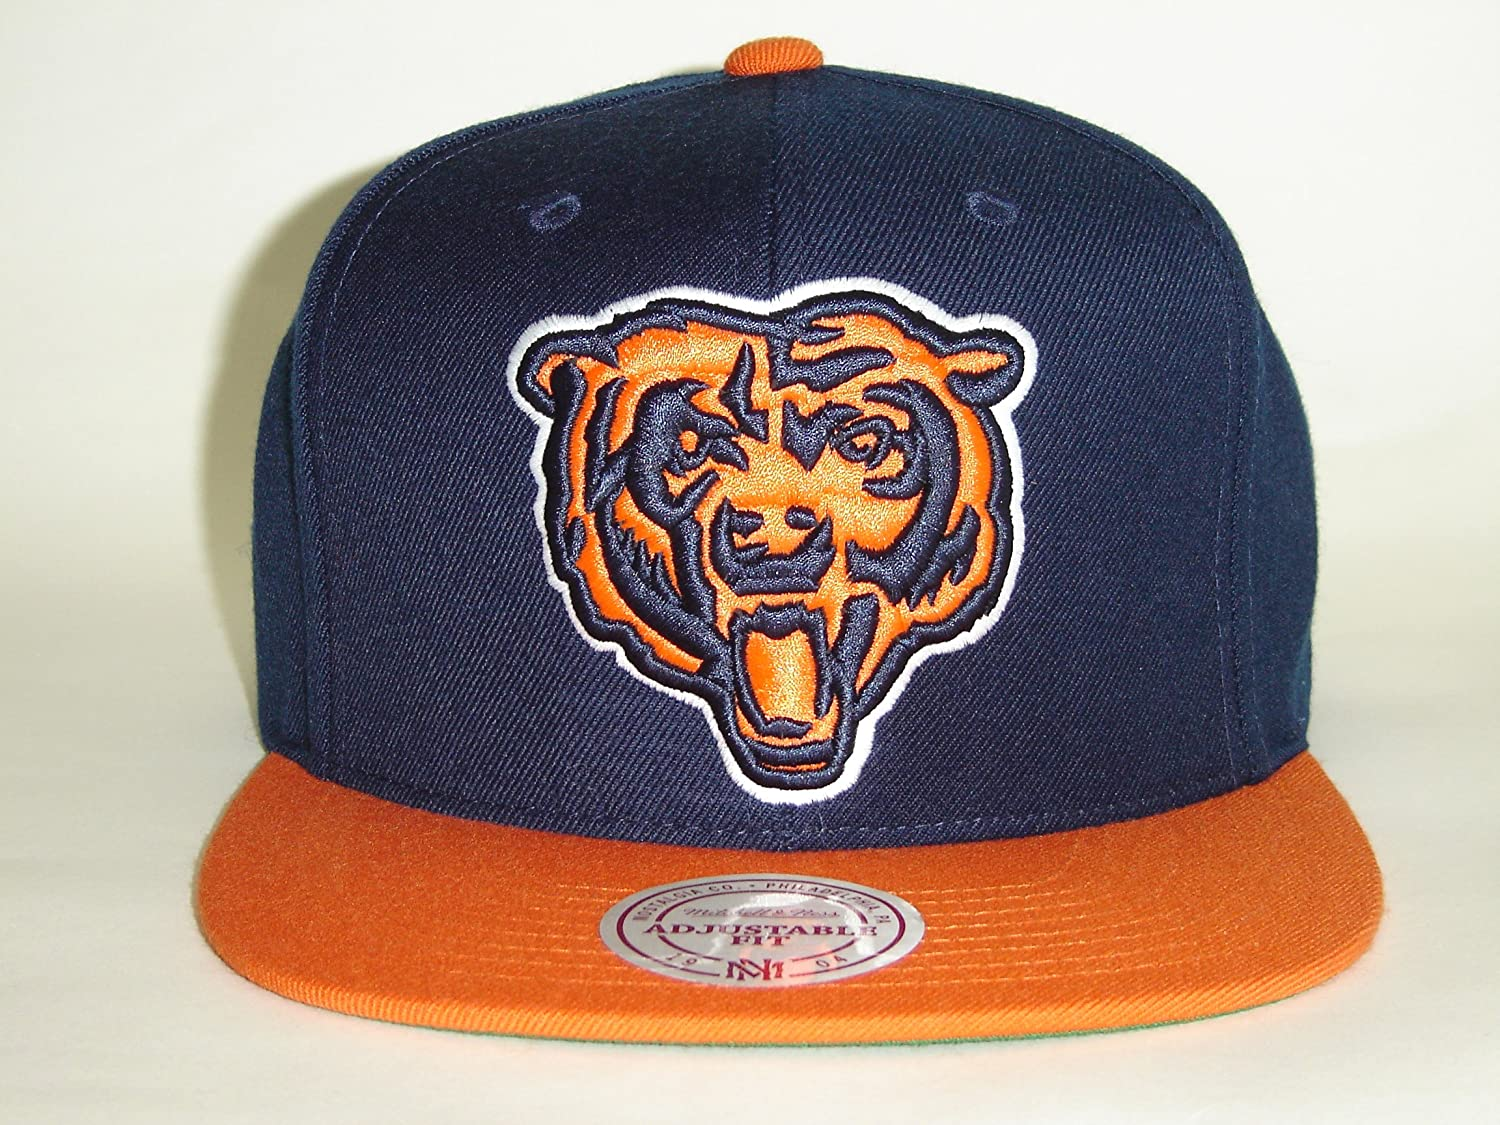 Mitchell and Ness NFL Chicago Bearsロゴ2トーンレトロスナップバックキャップ   B008J8NAC0